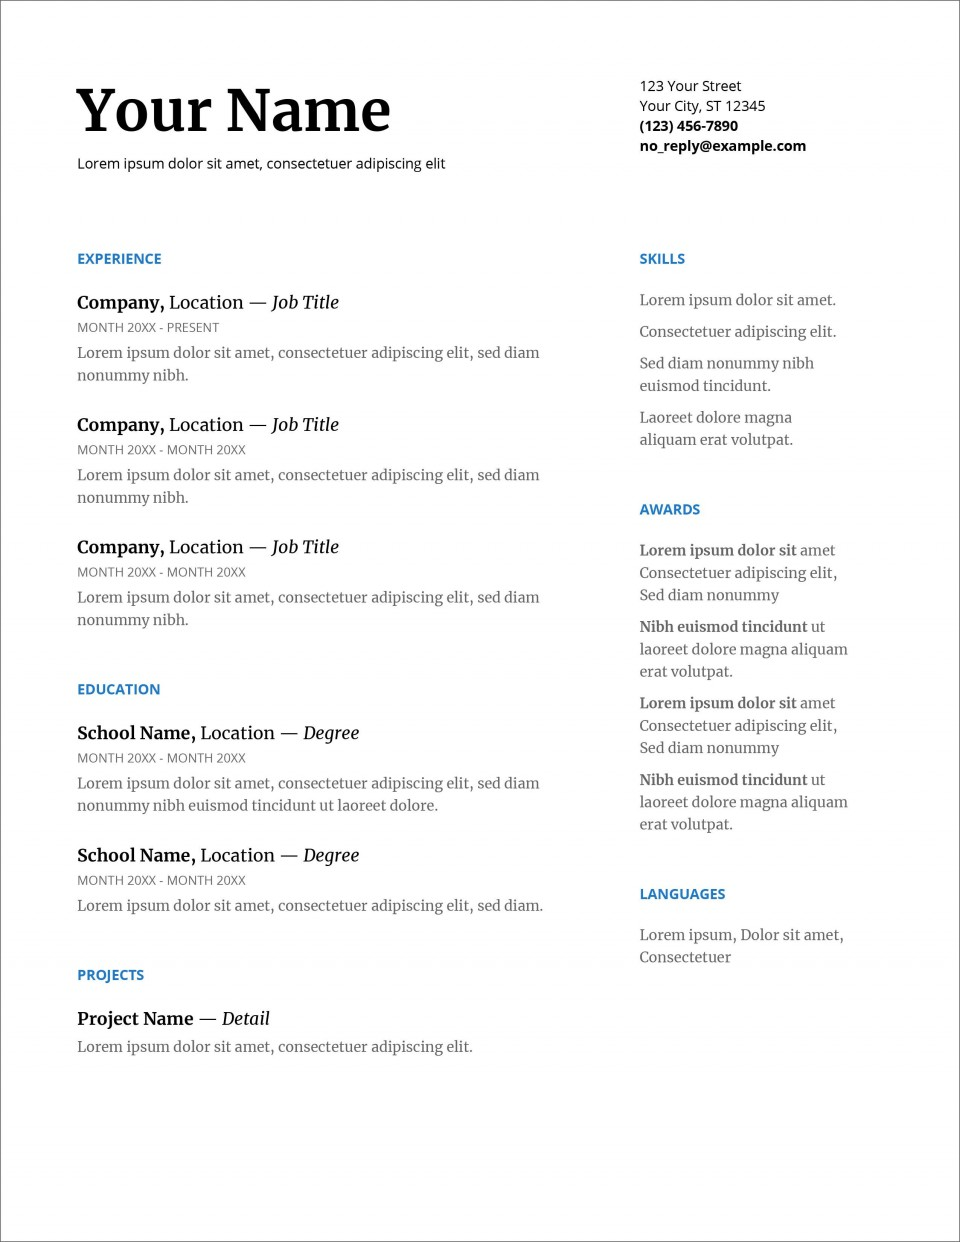 007 Fearsome Download Resume Template Word 2007 High Resolution 960